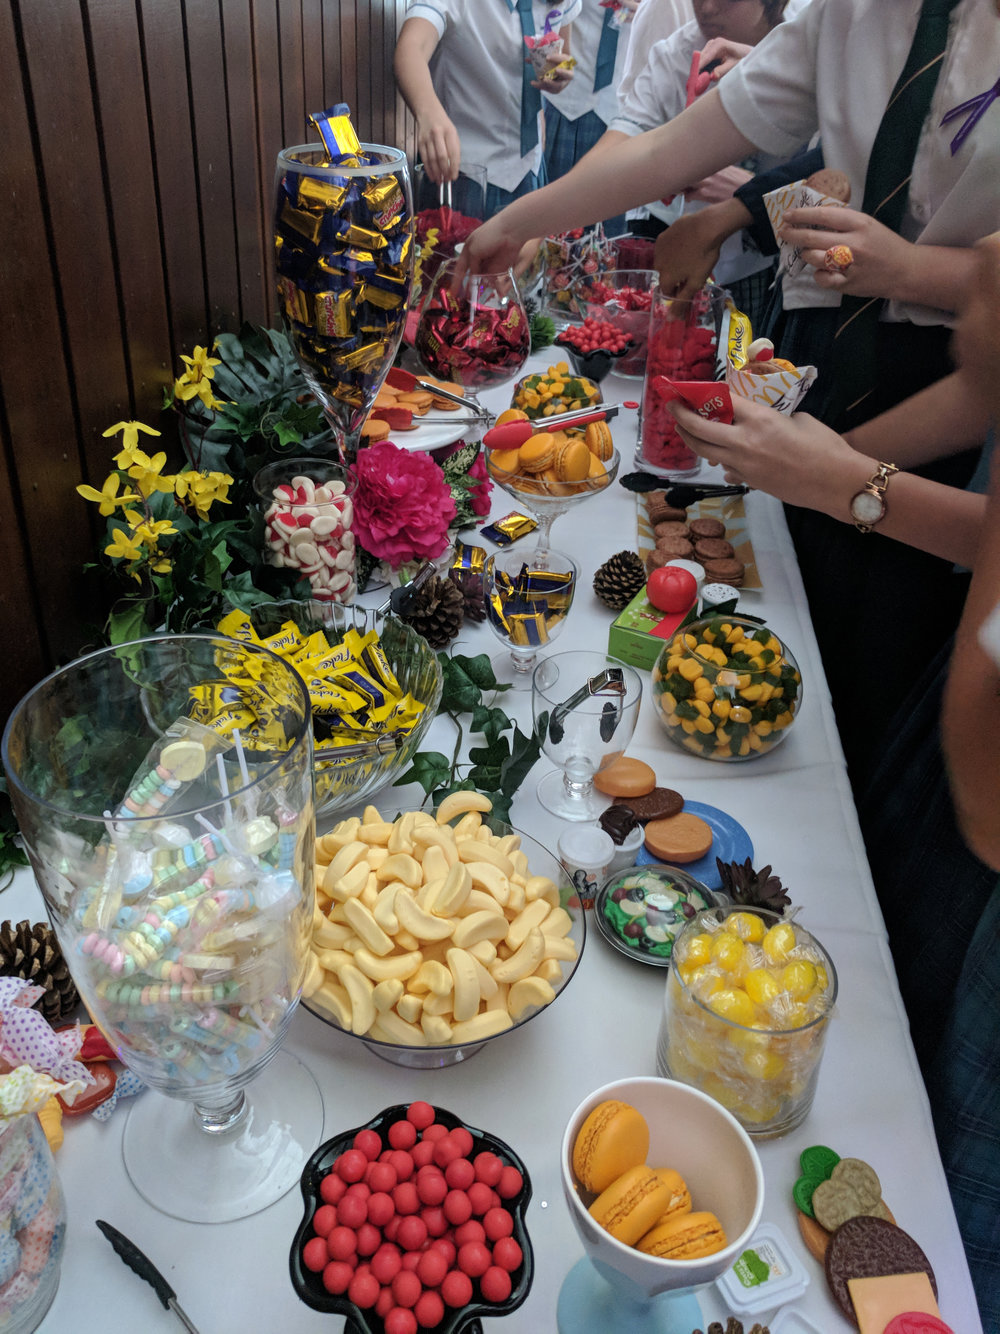 Enjoying the lolly bar